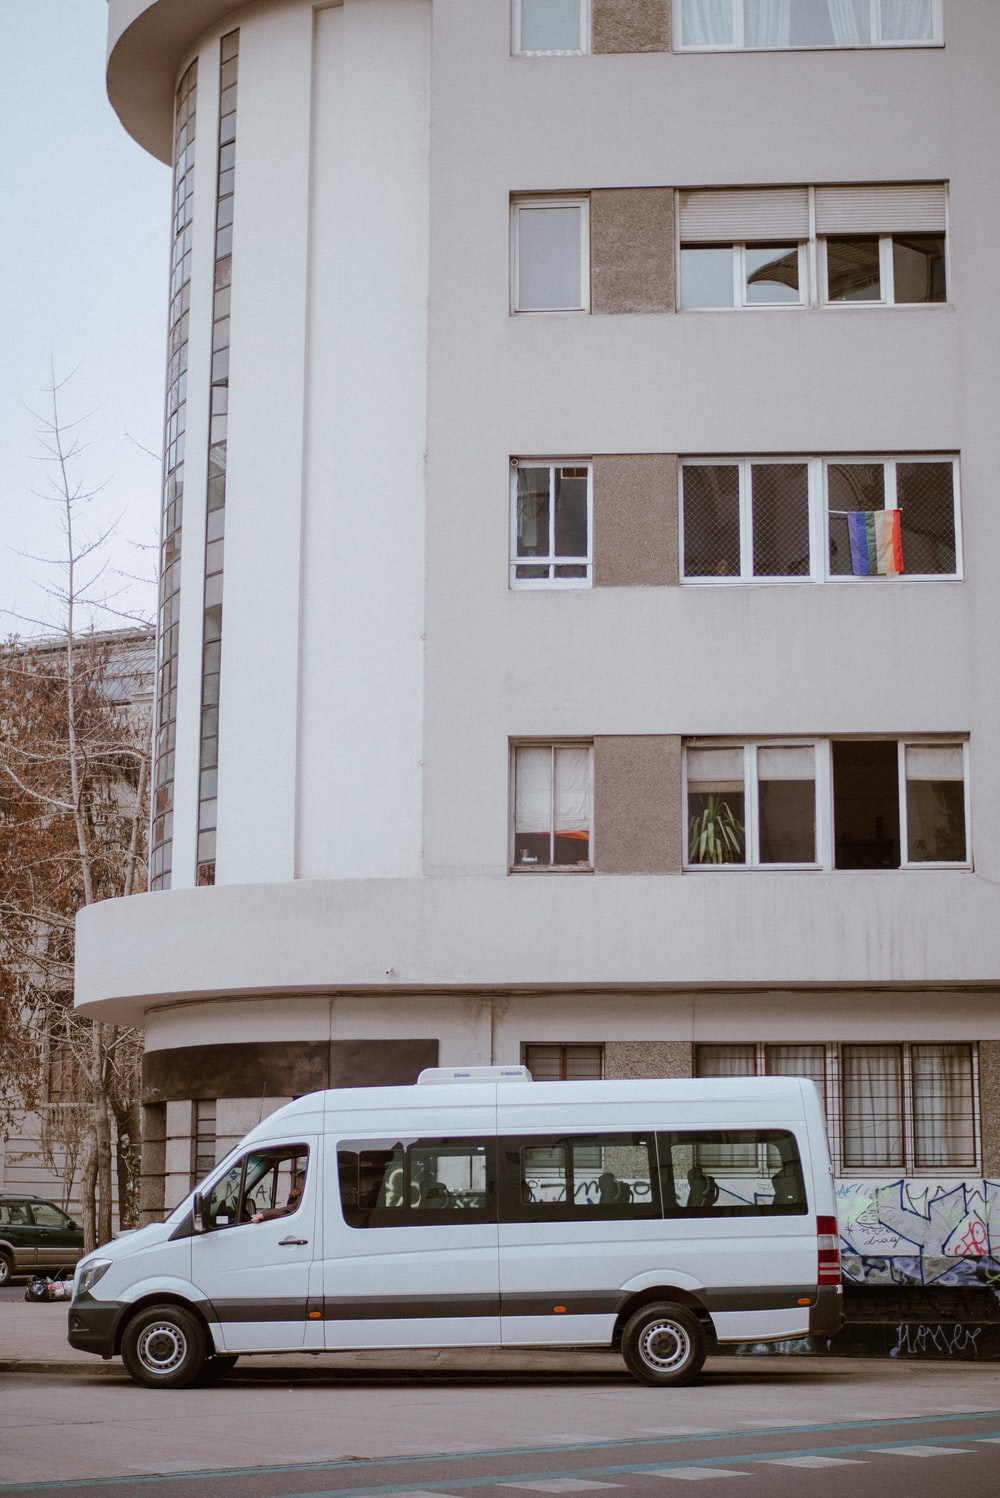 white van parking near building